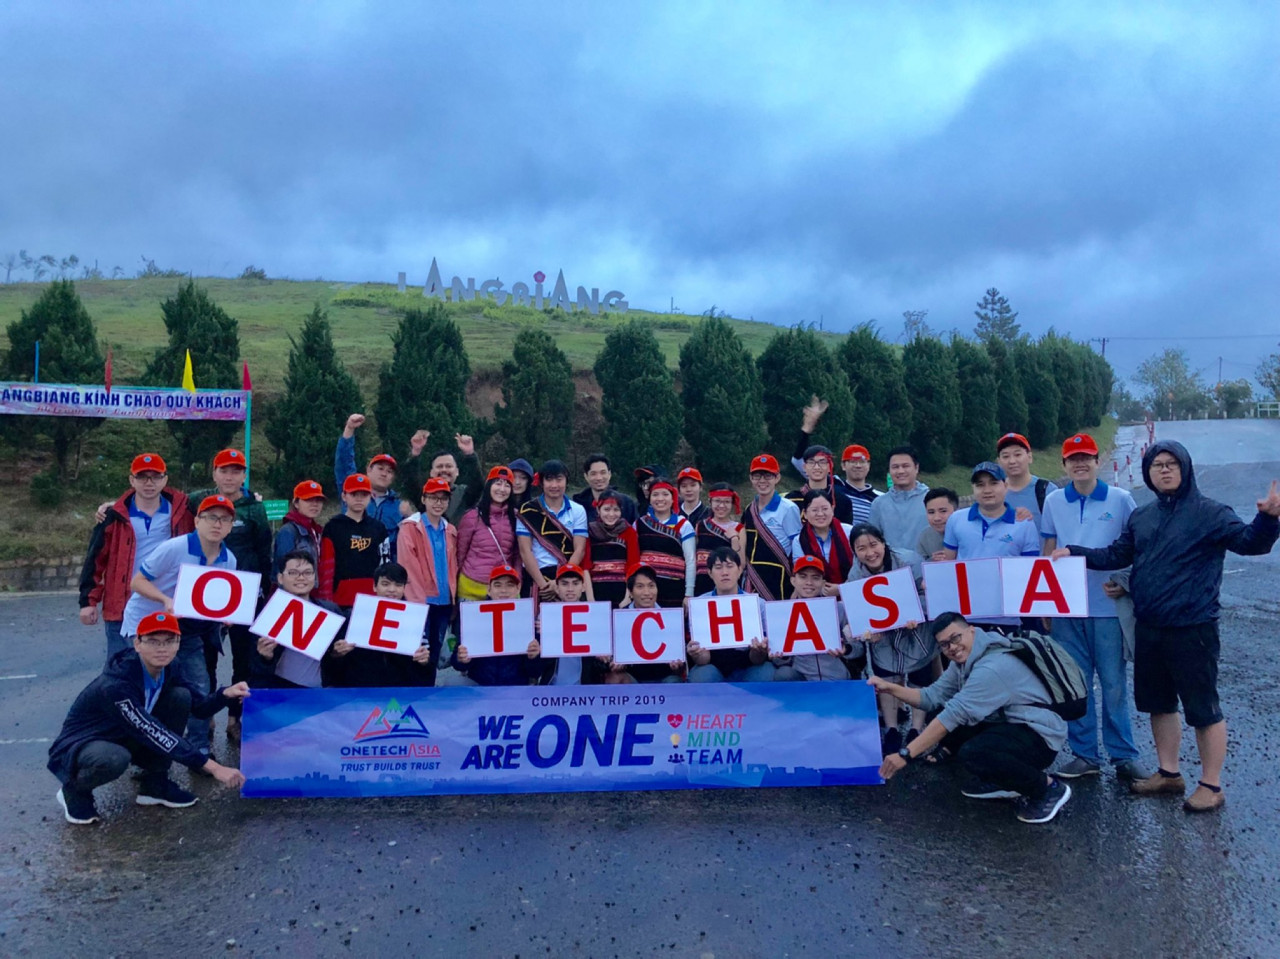 OneTech Asia Company trip 2019 – TOGETHER WE SHINE – 04/09/2019 – 07/09/2019